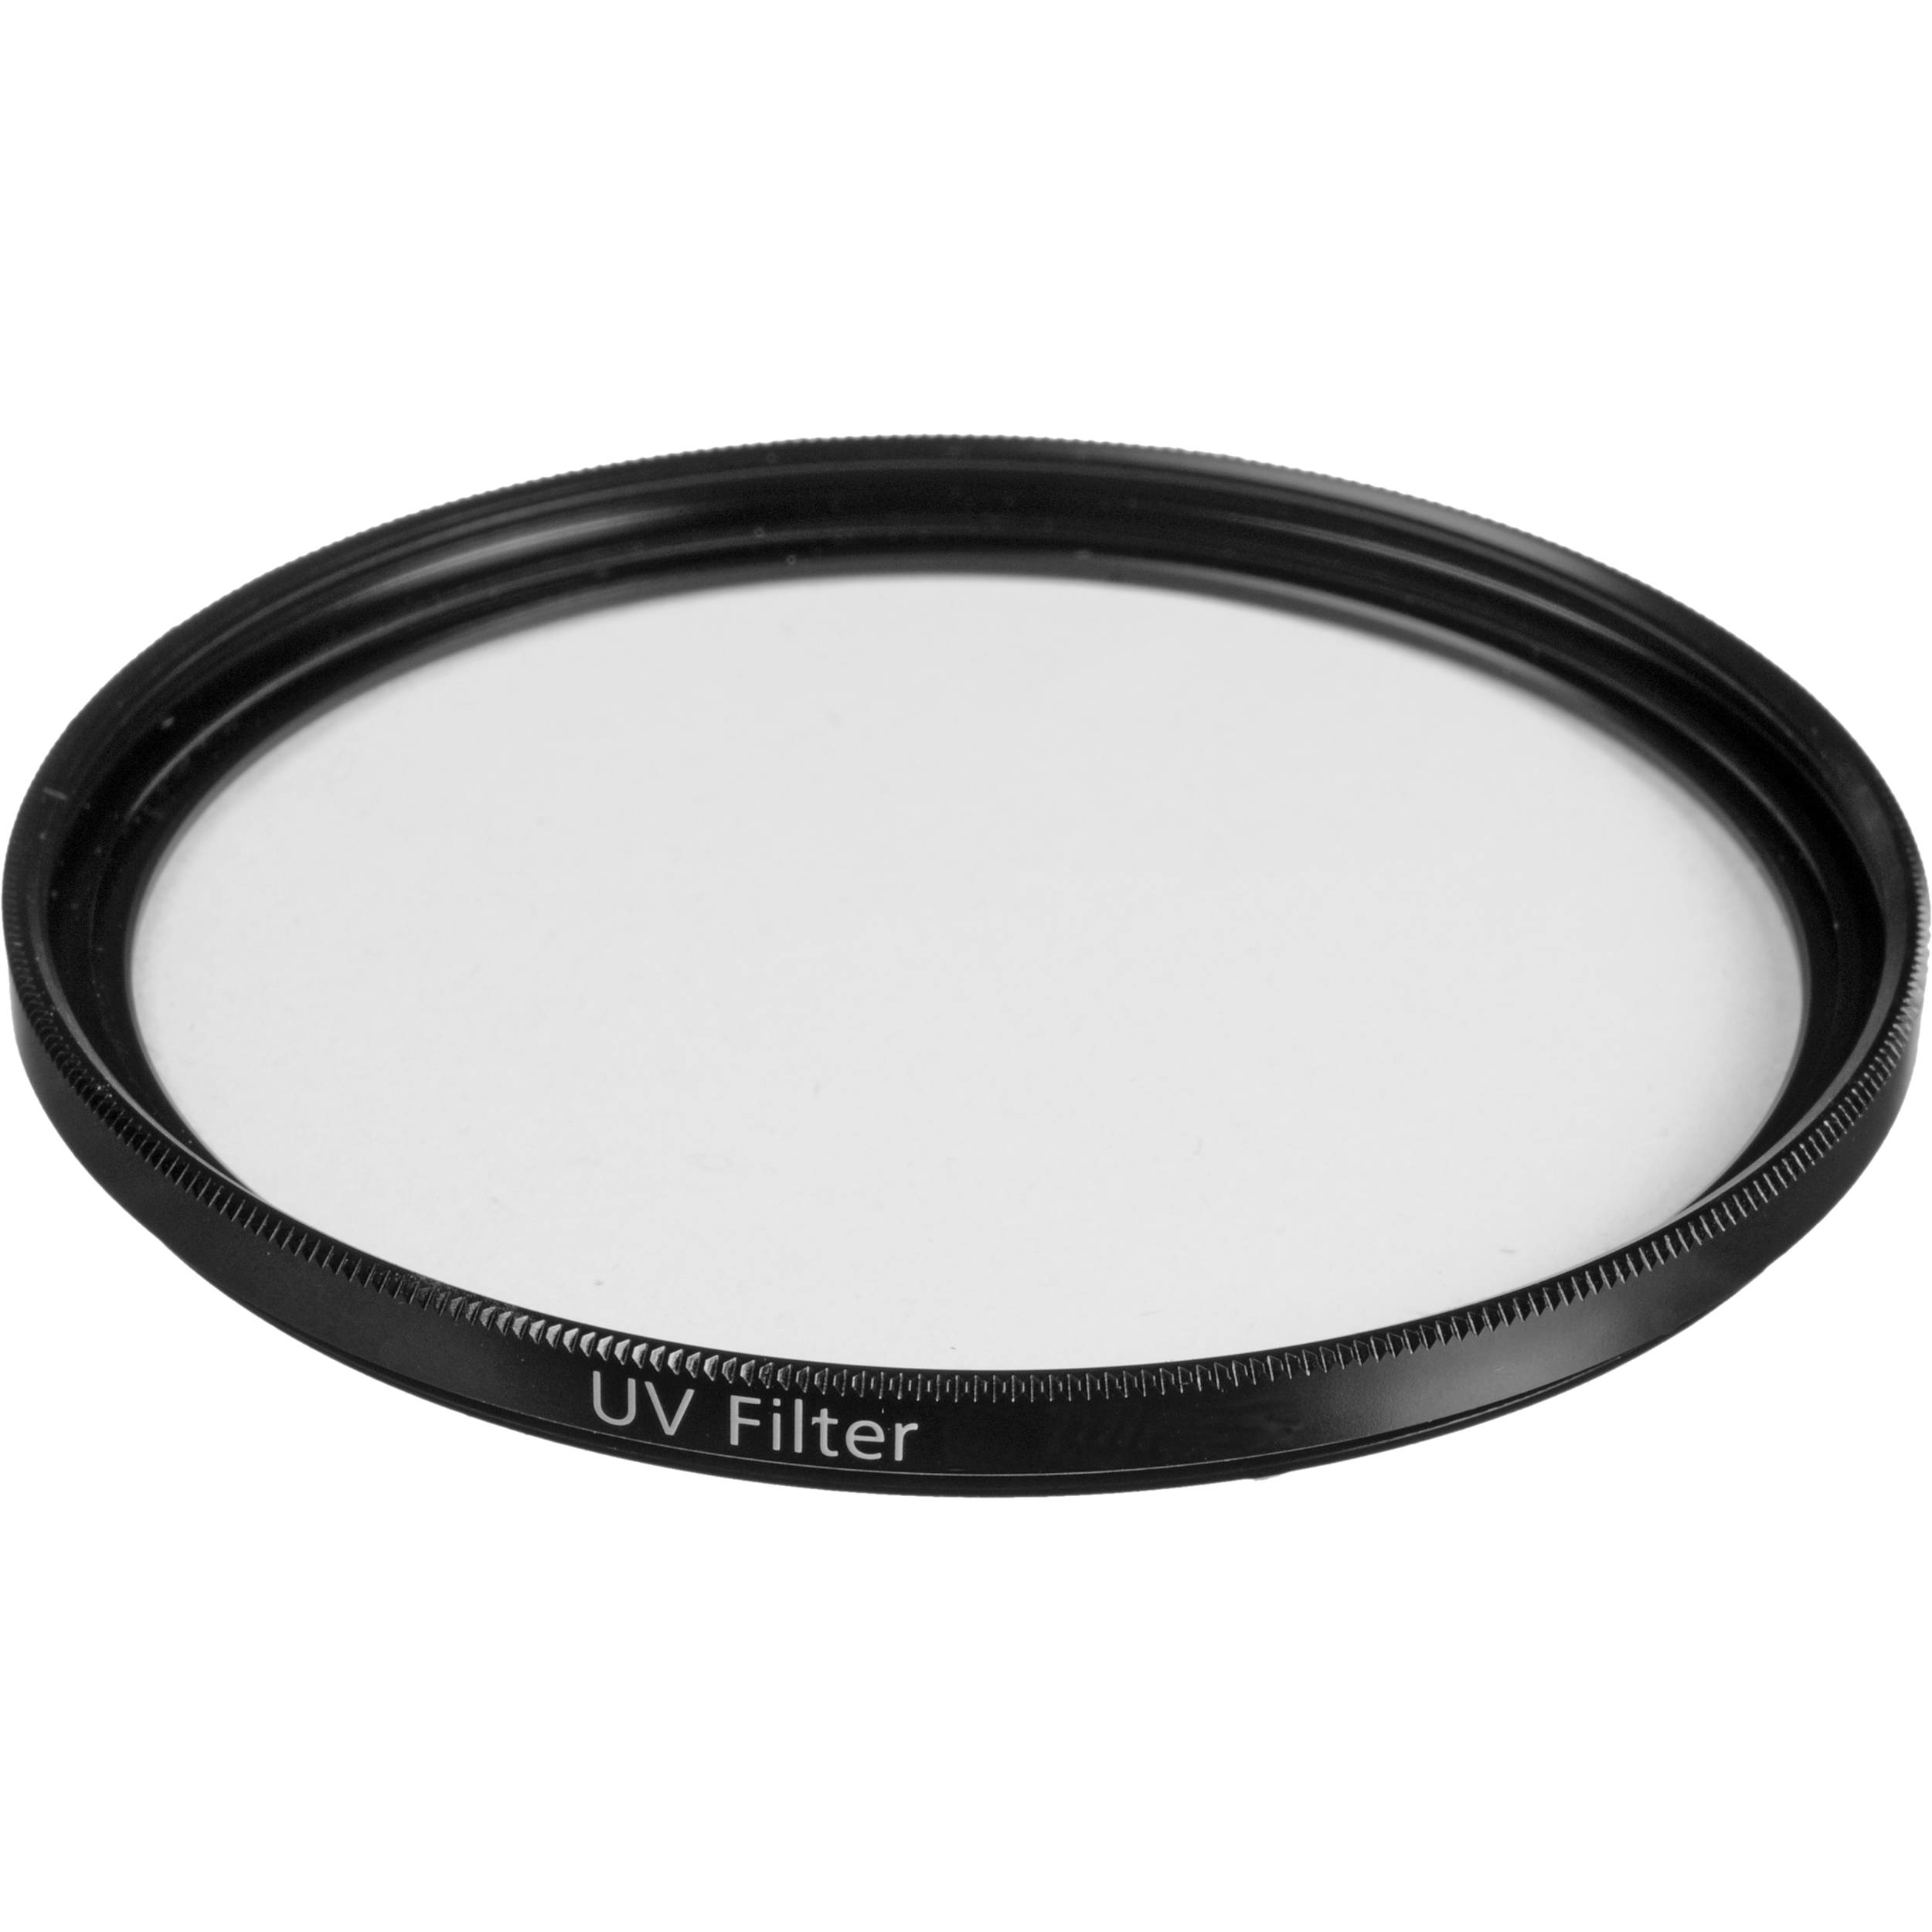 Zeiss t filtro UV 67mm